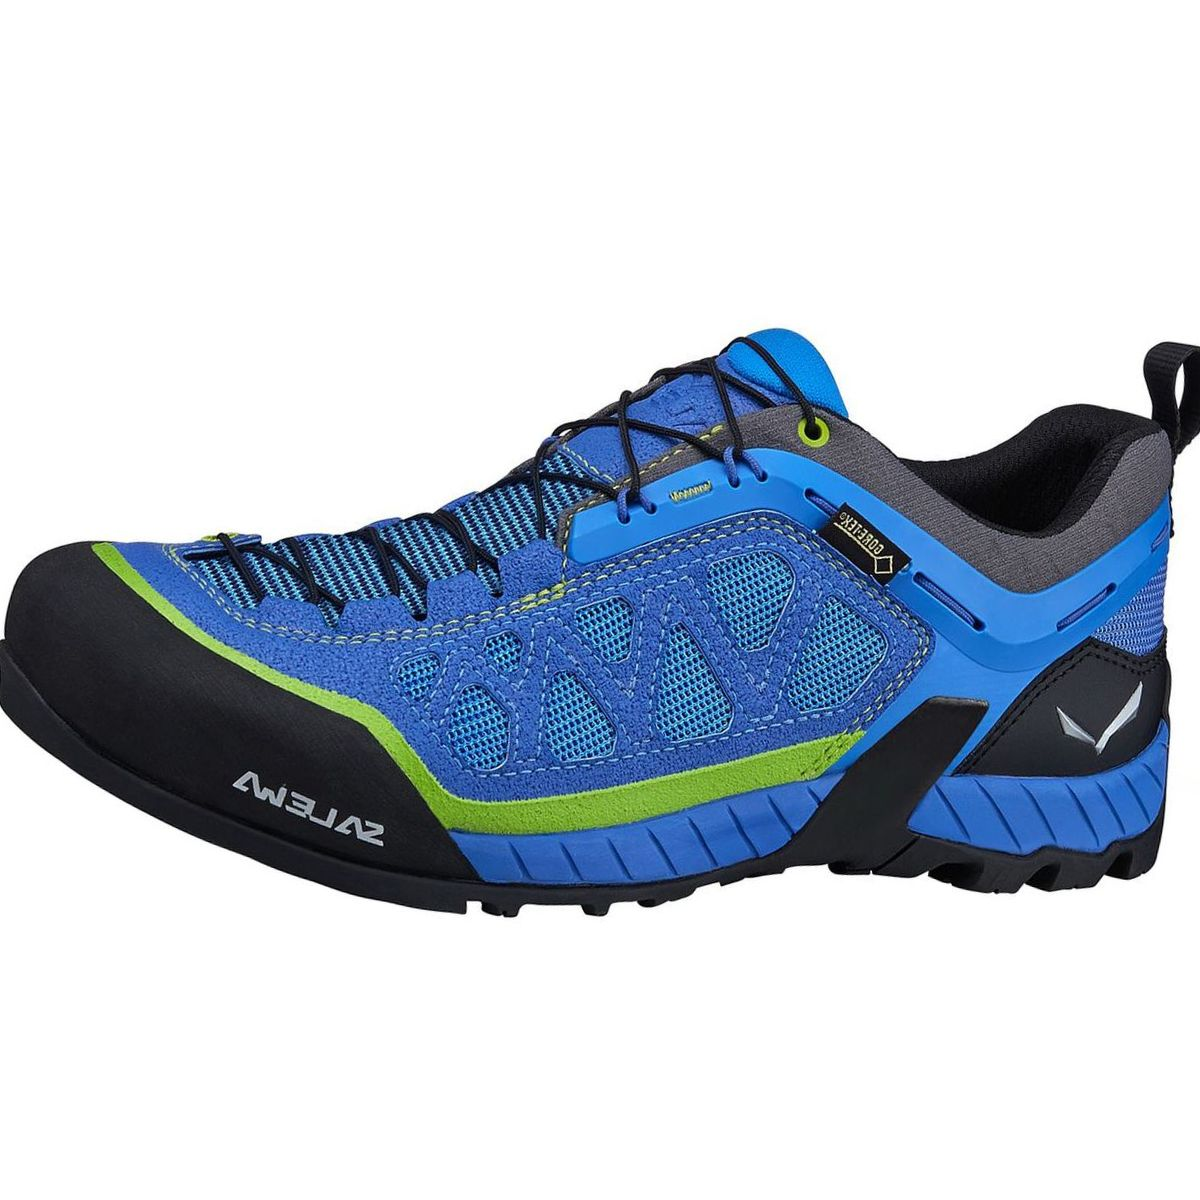 Salewa Firetail 3 GTX Approach Shoe - Men's